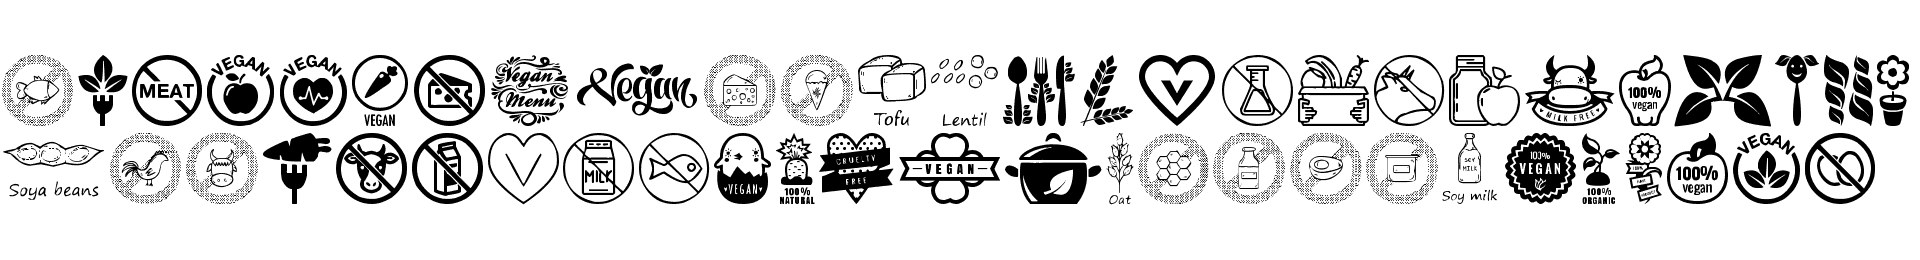 Vegan Icons